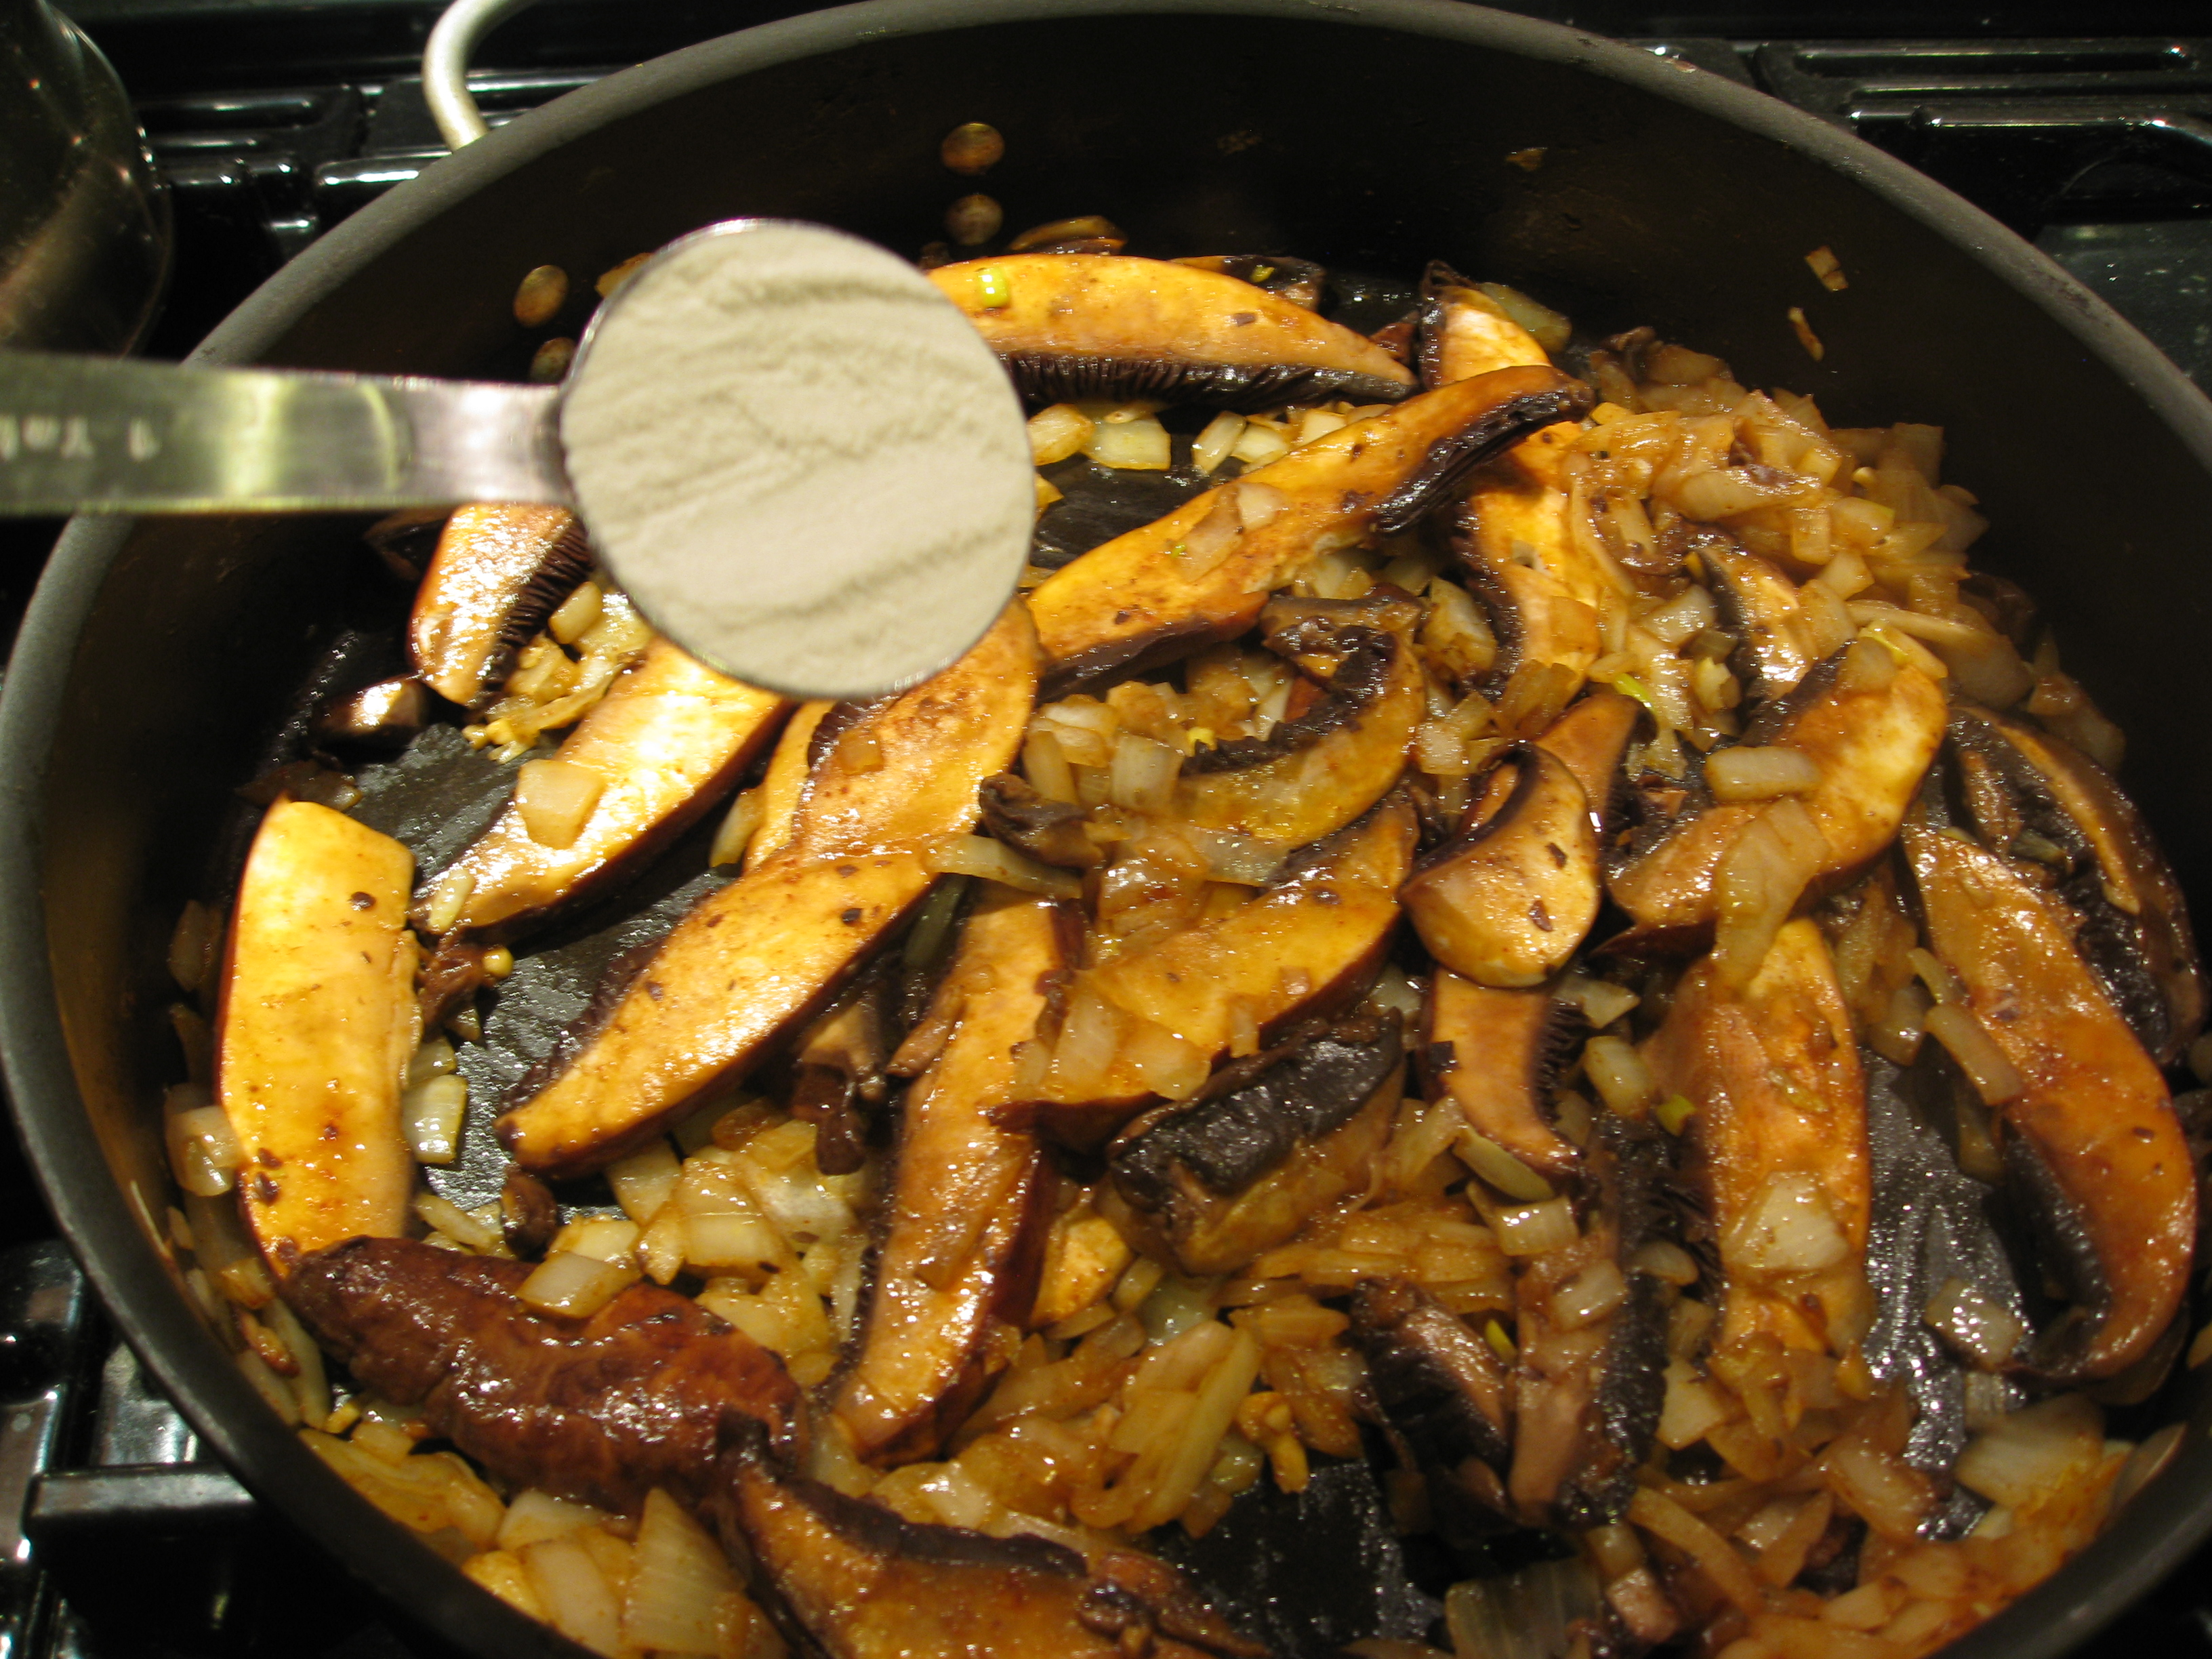 Saute mushrooms and onions, add smoked paprika and then toss with a little flour to thicken.